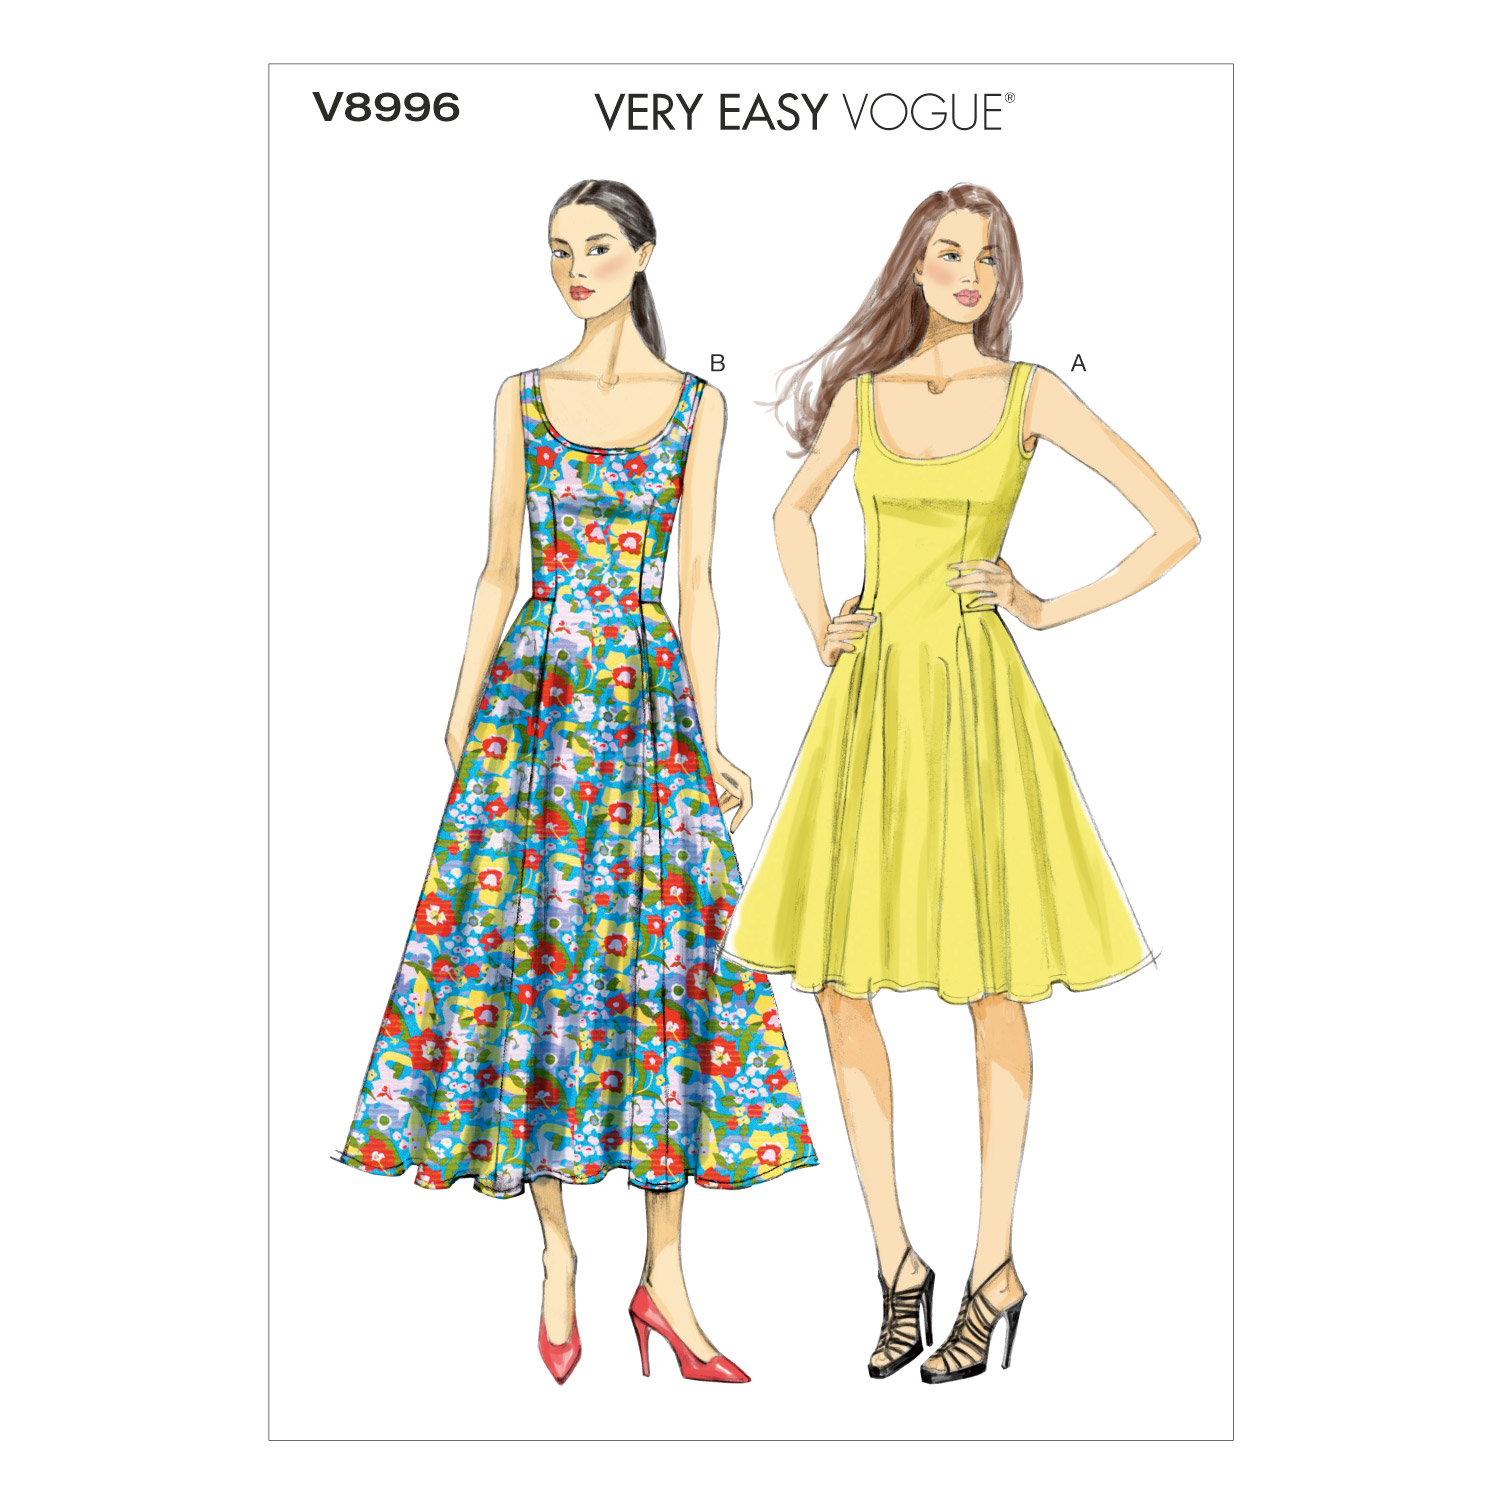 Vogue Patterns Misses Dress-V8996